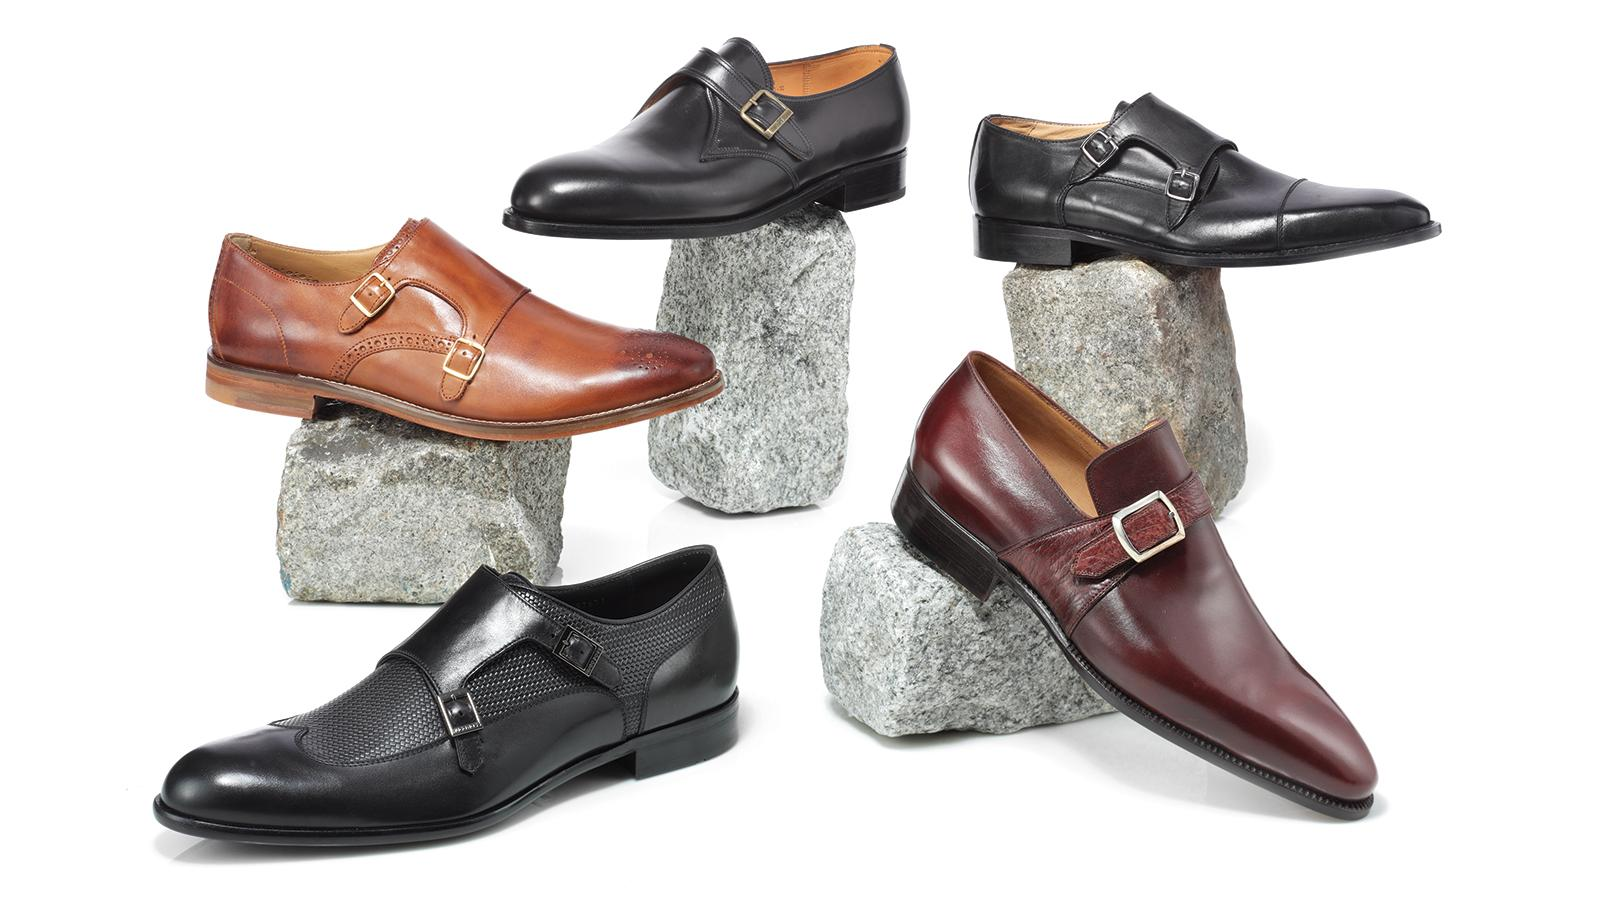 Monk-Strap Shoes